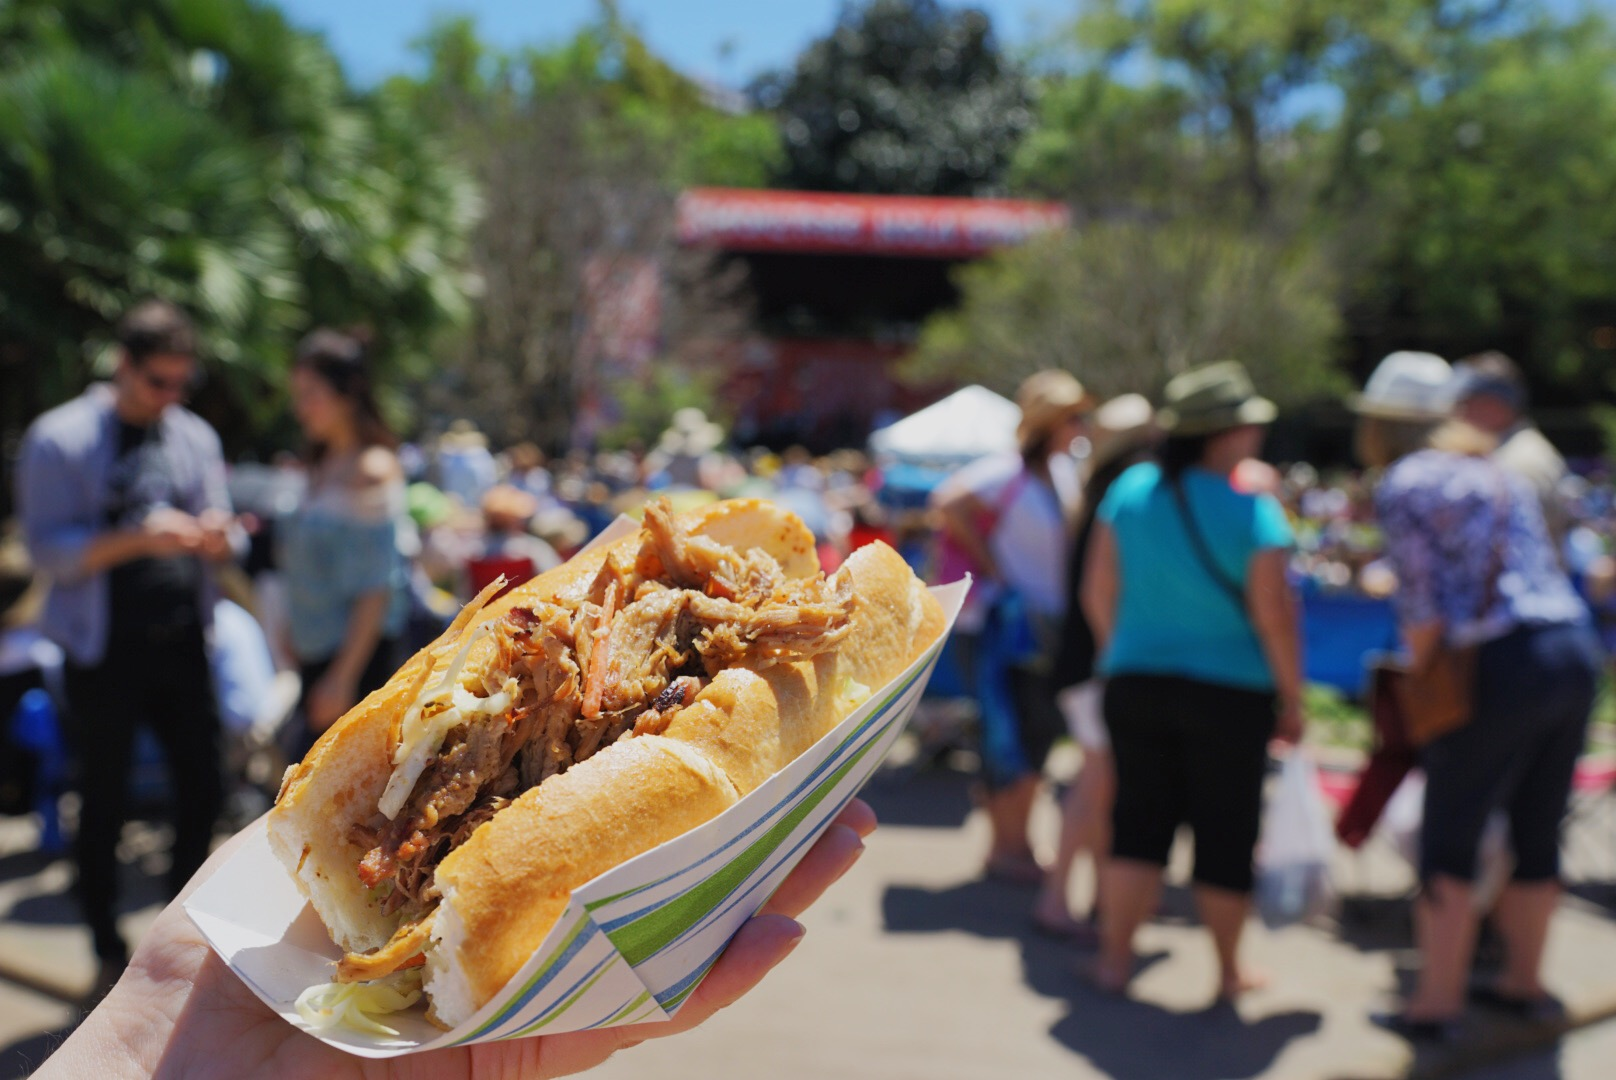 The quintessential New Orleans festival accessory: A Walker's/Love At First Bite Cochon de Lait Po-boy! (Photo: Paul Broussard)